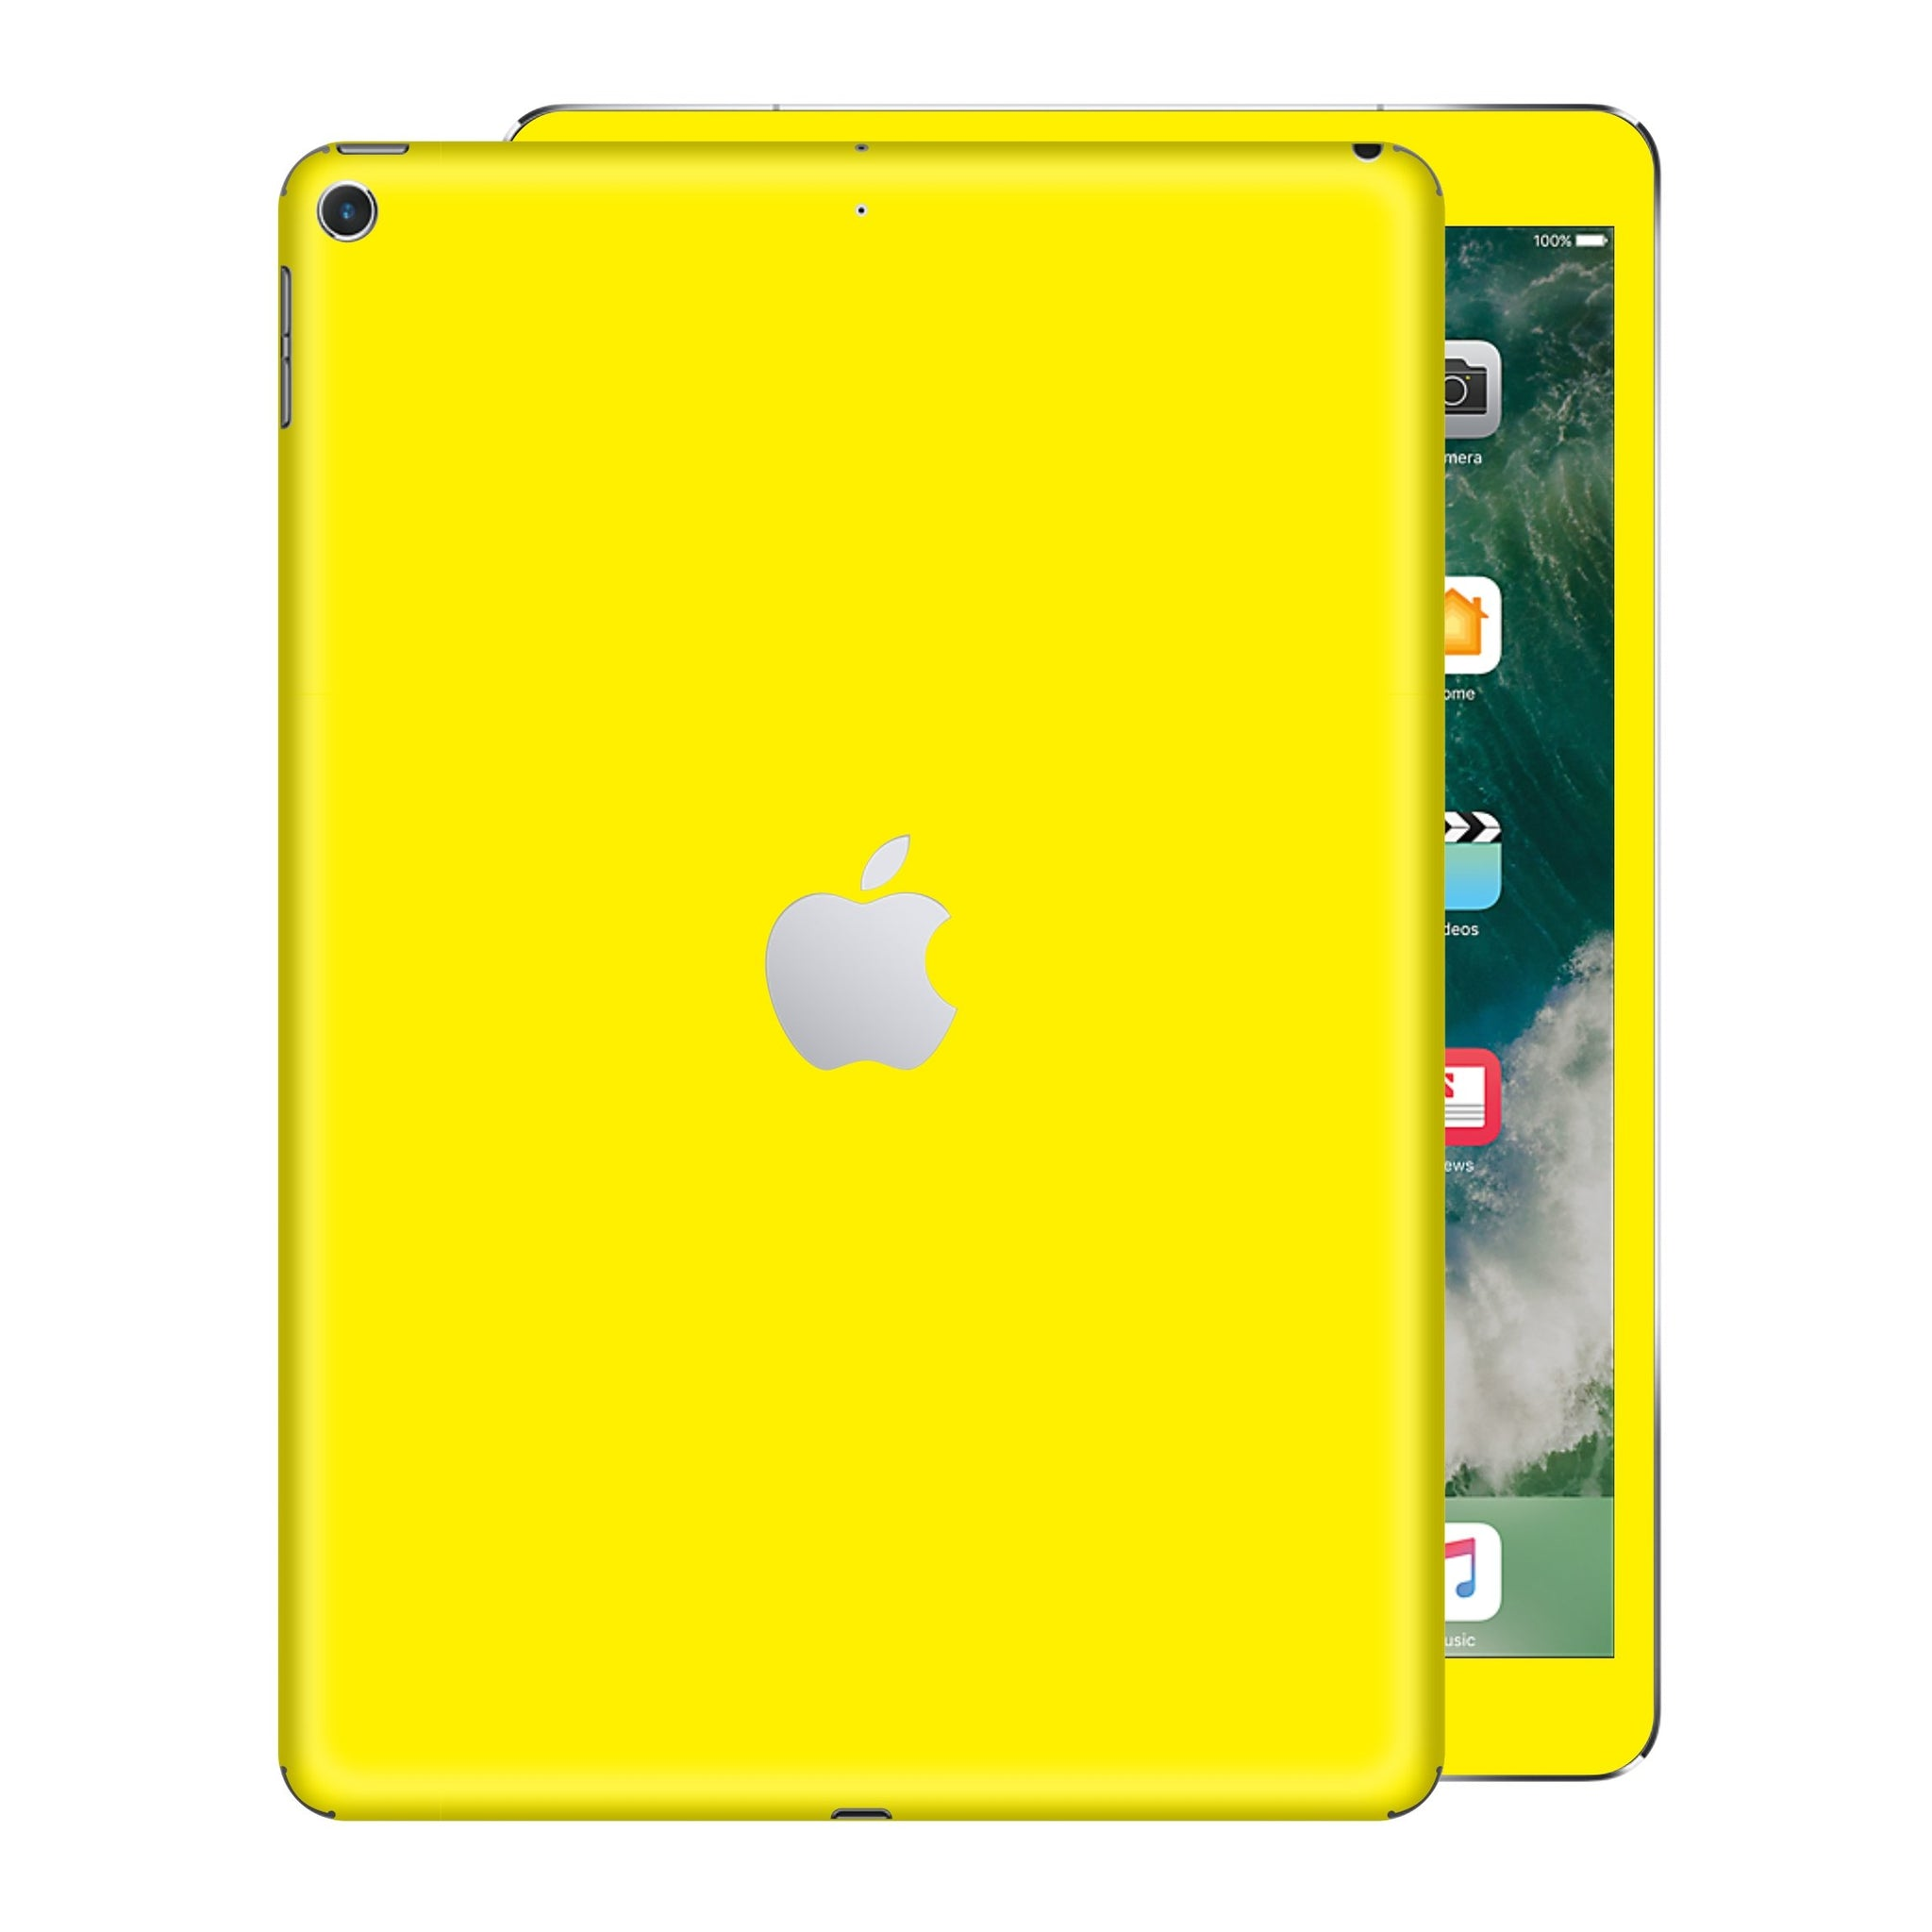 iPad 9.7 inch 2017 Glossy Lemon Yellow Skin Wrap Sticker Decal Cover Protector by EasySkinz